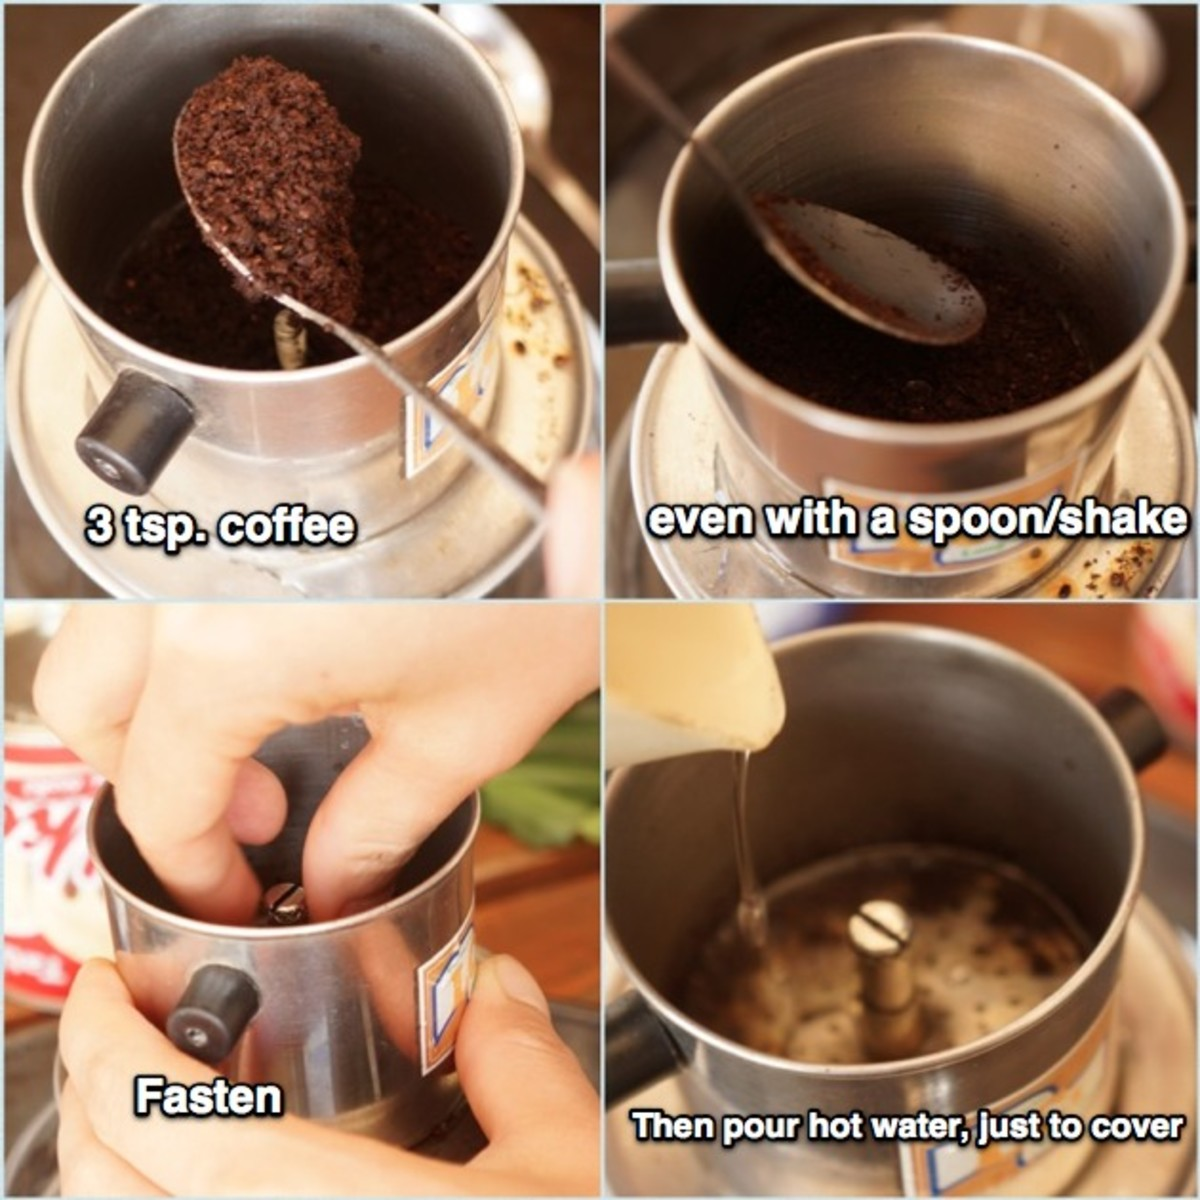 Place the cup to the bowl cover with hot water, add 3 tsp coffee into the filter, even the surface with a spoon or/and shake, then fasten, a bit loose, and pour hot water just to cover the coffee.